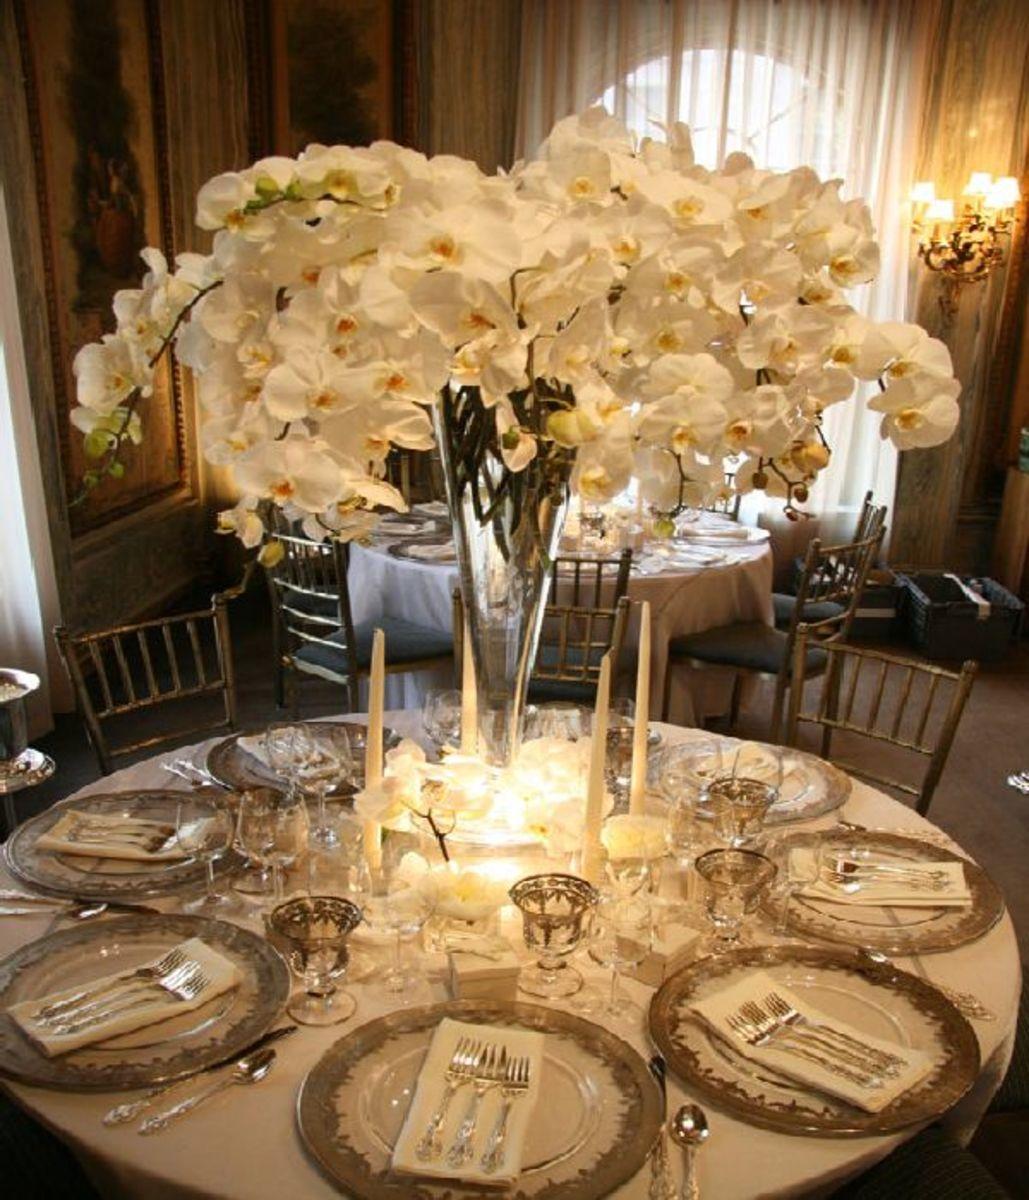 20 photos of wedding table d cor ideas creative table for Wedding party table decorations